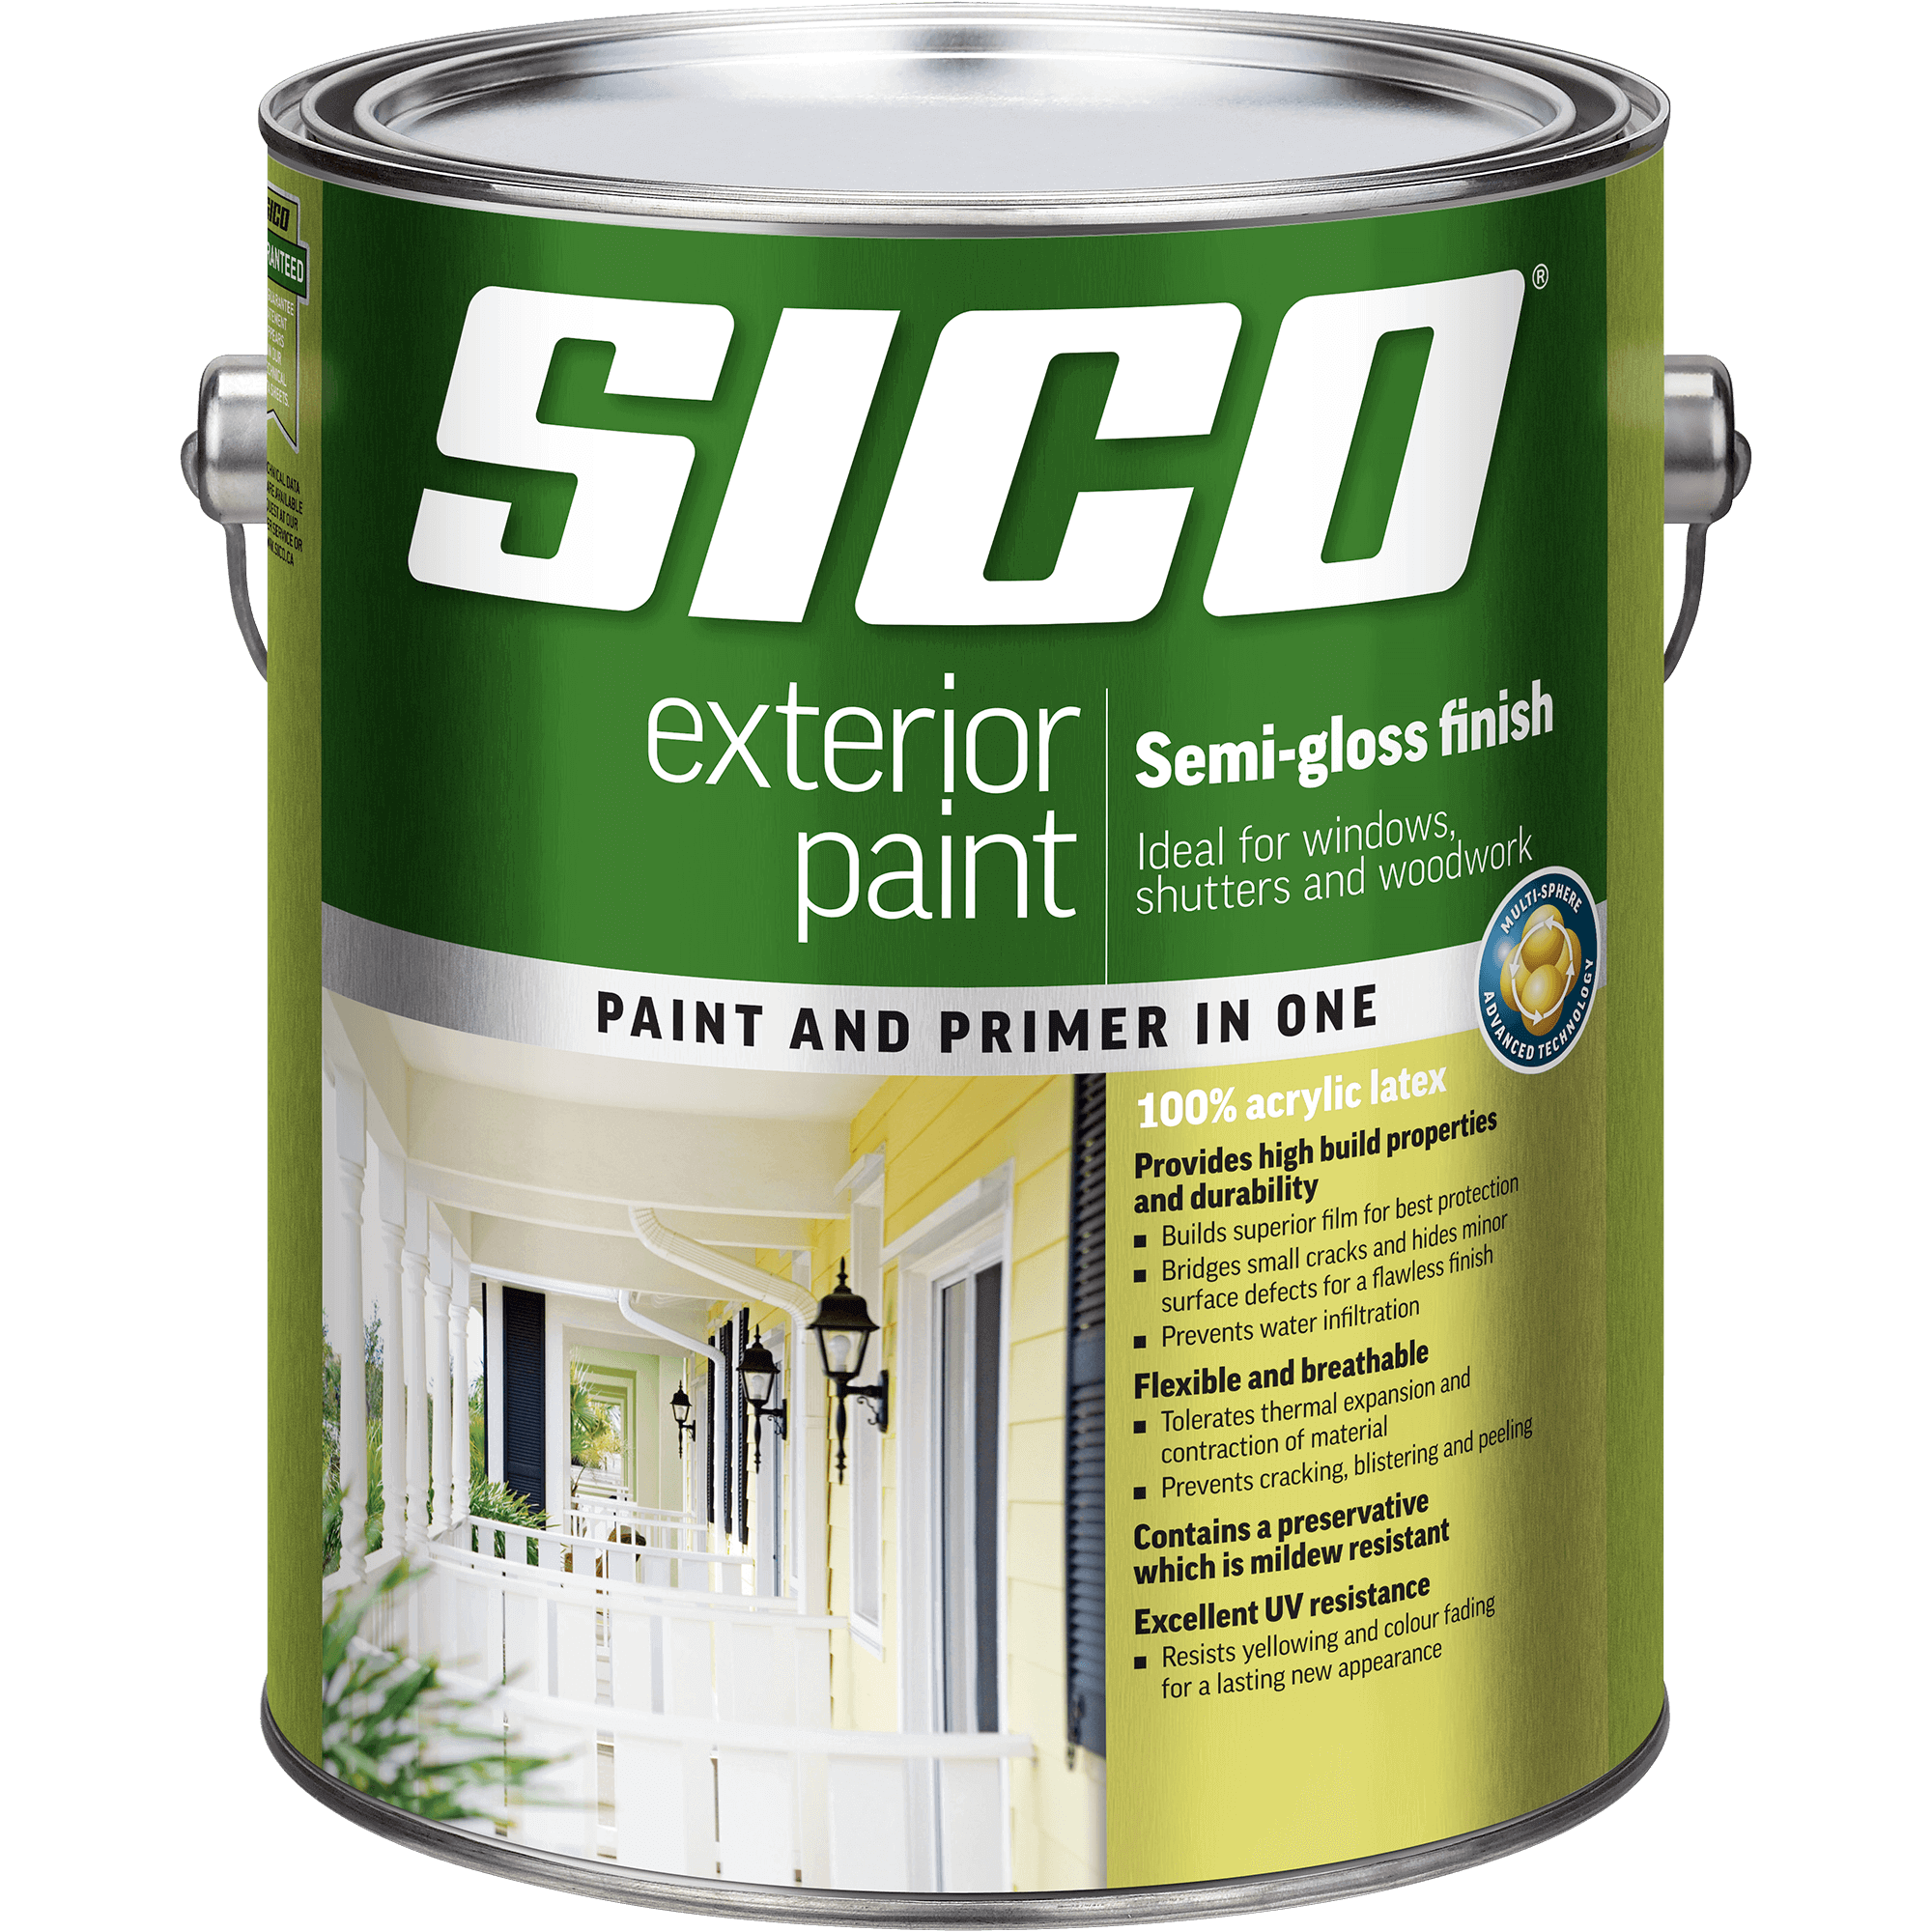 SICO<sup>®</sup> Exterior Paint Our Best Quality semi-gloss